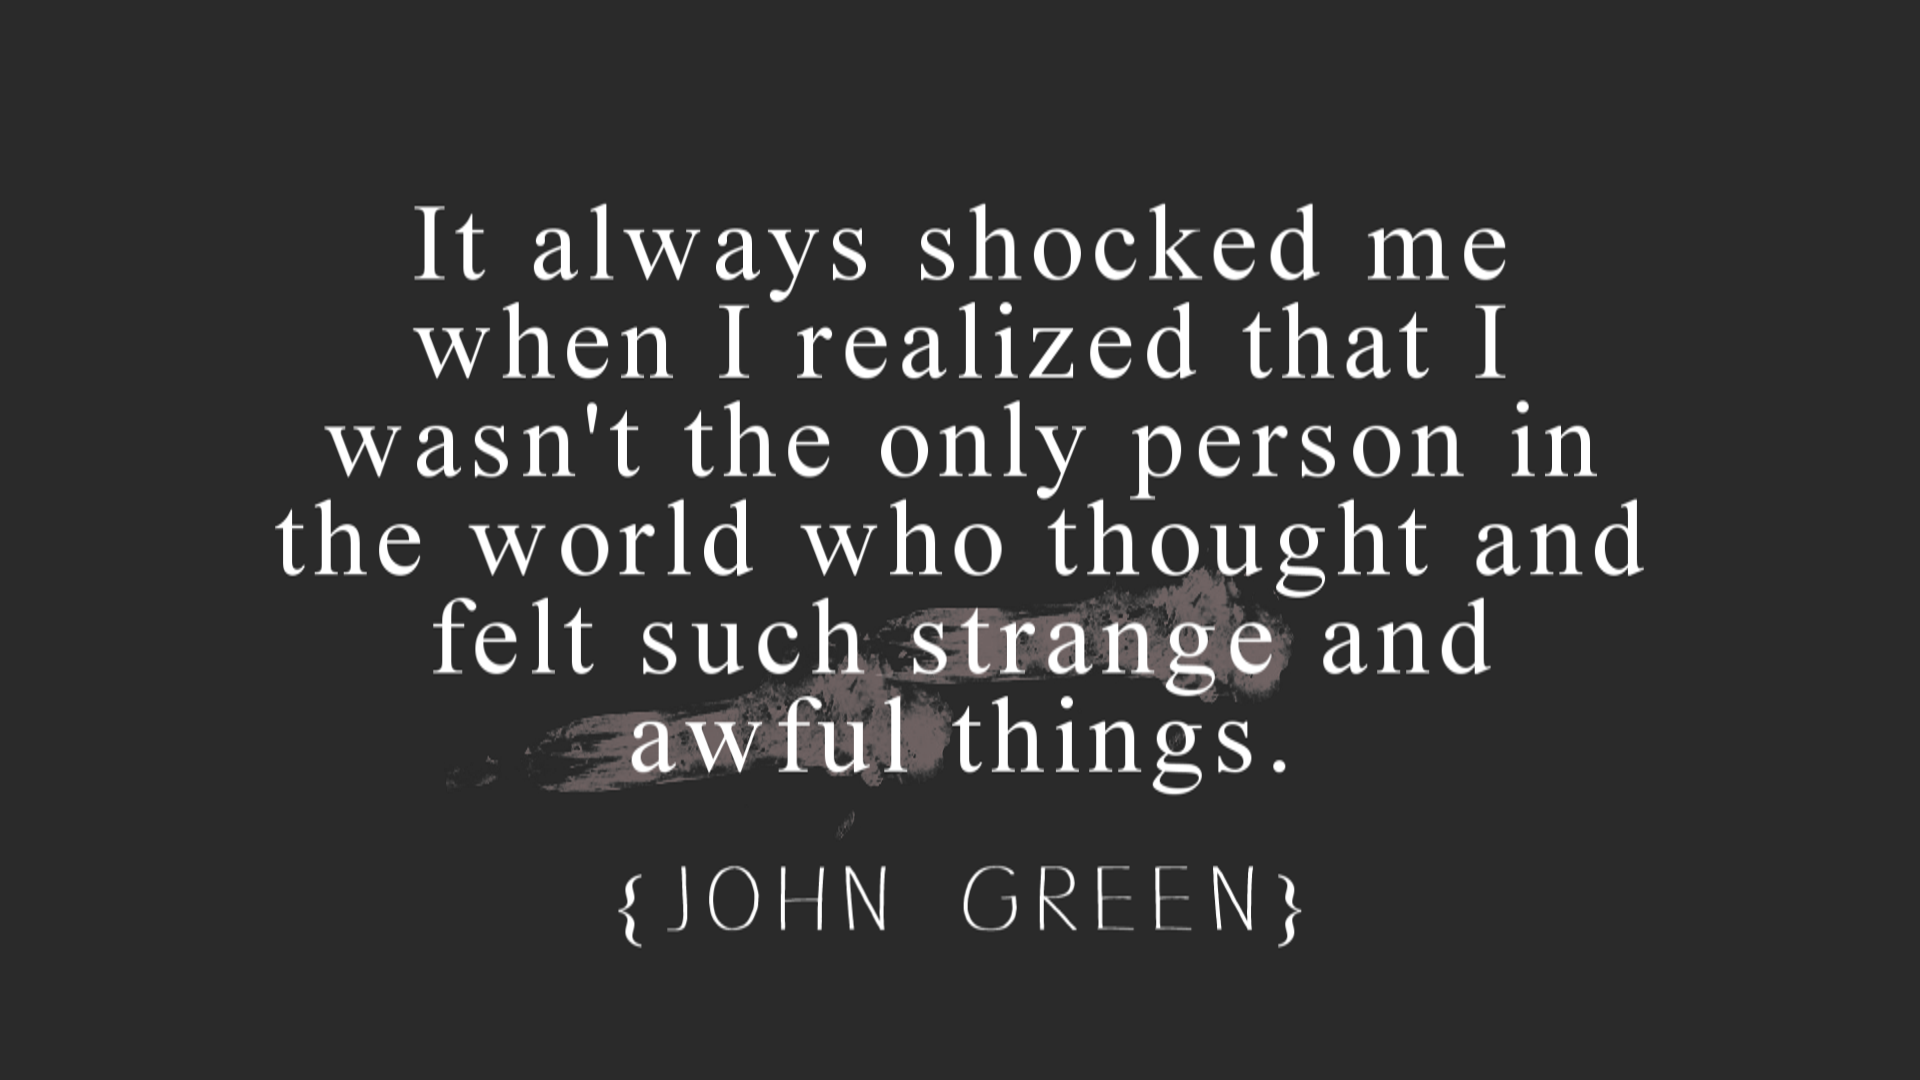 Internet Quotes Internet Friends Quotes John Green John Green Quotes Image At